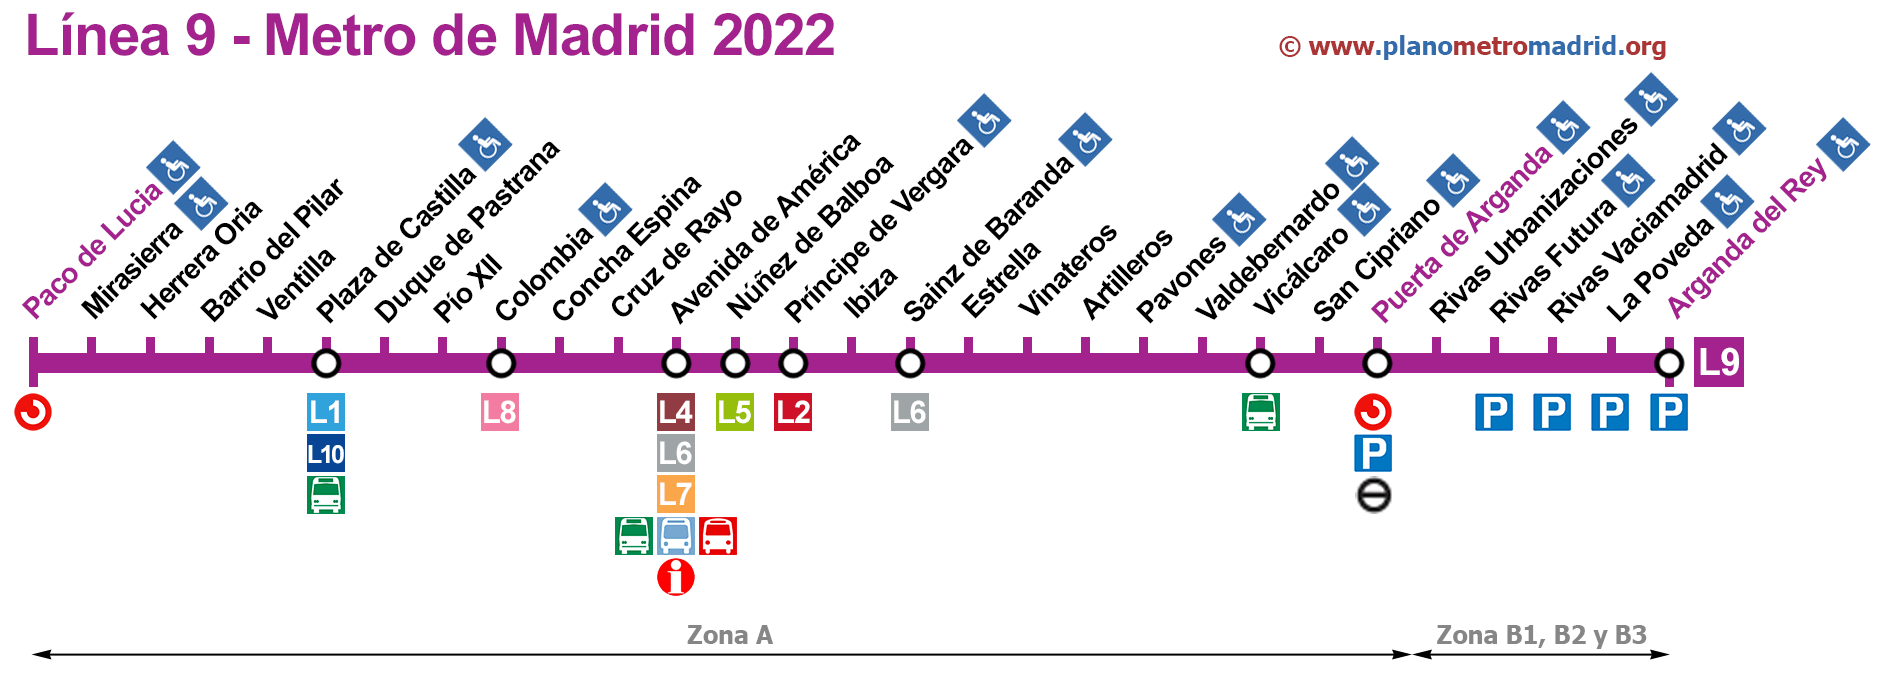 Line 9 of the metro in Madrid